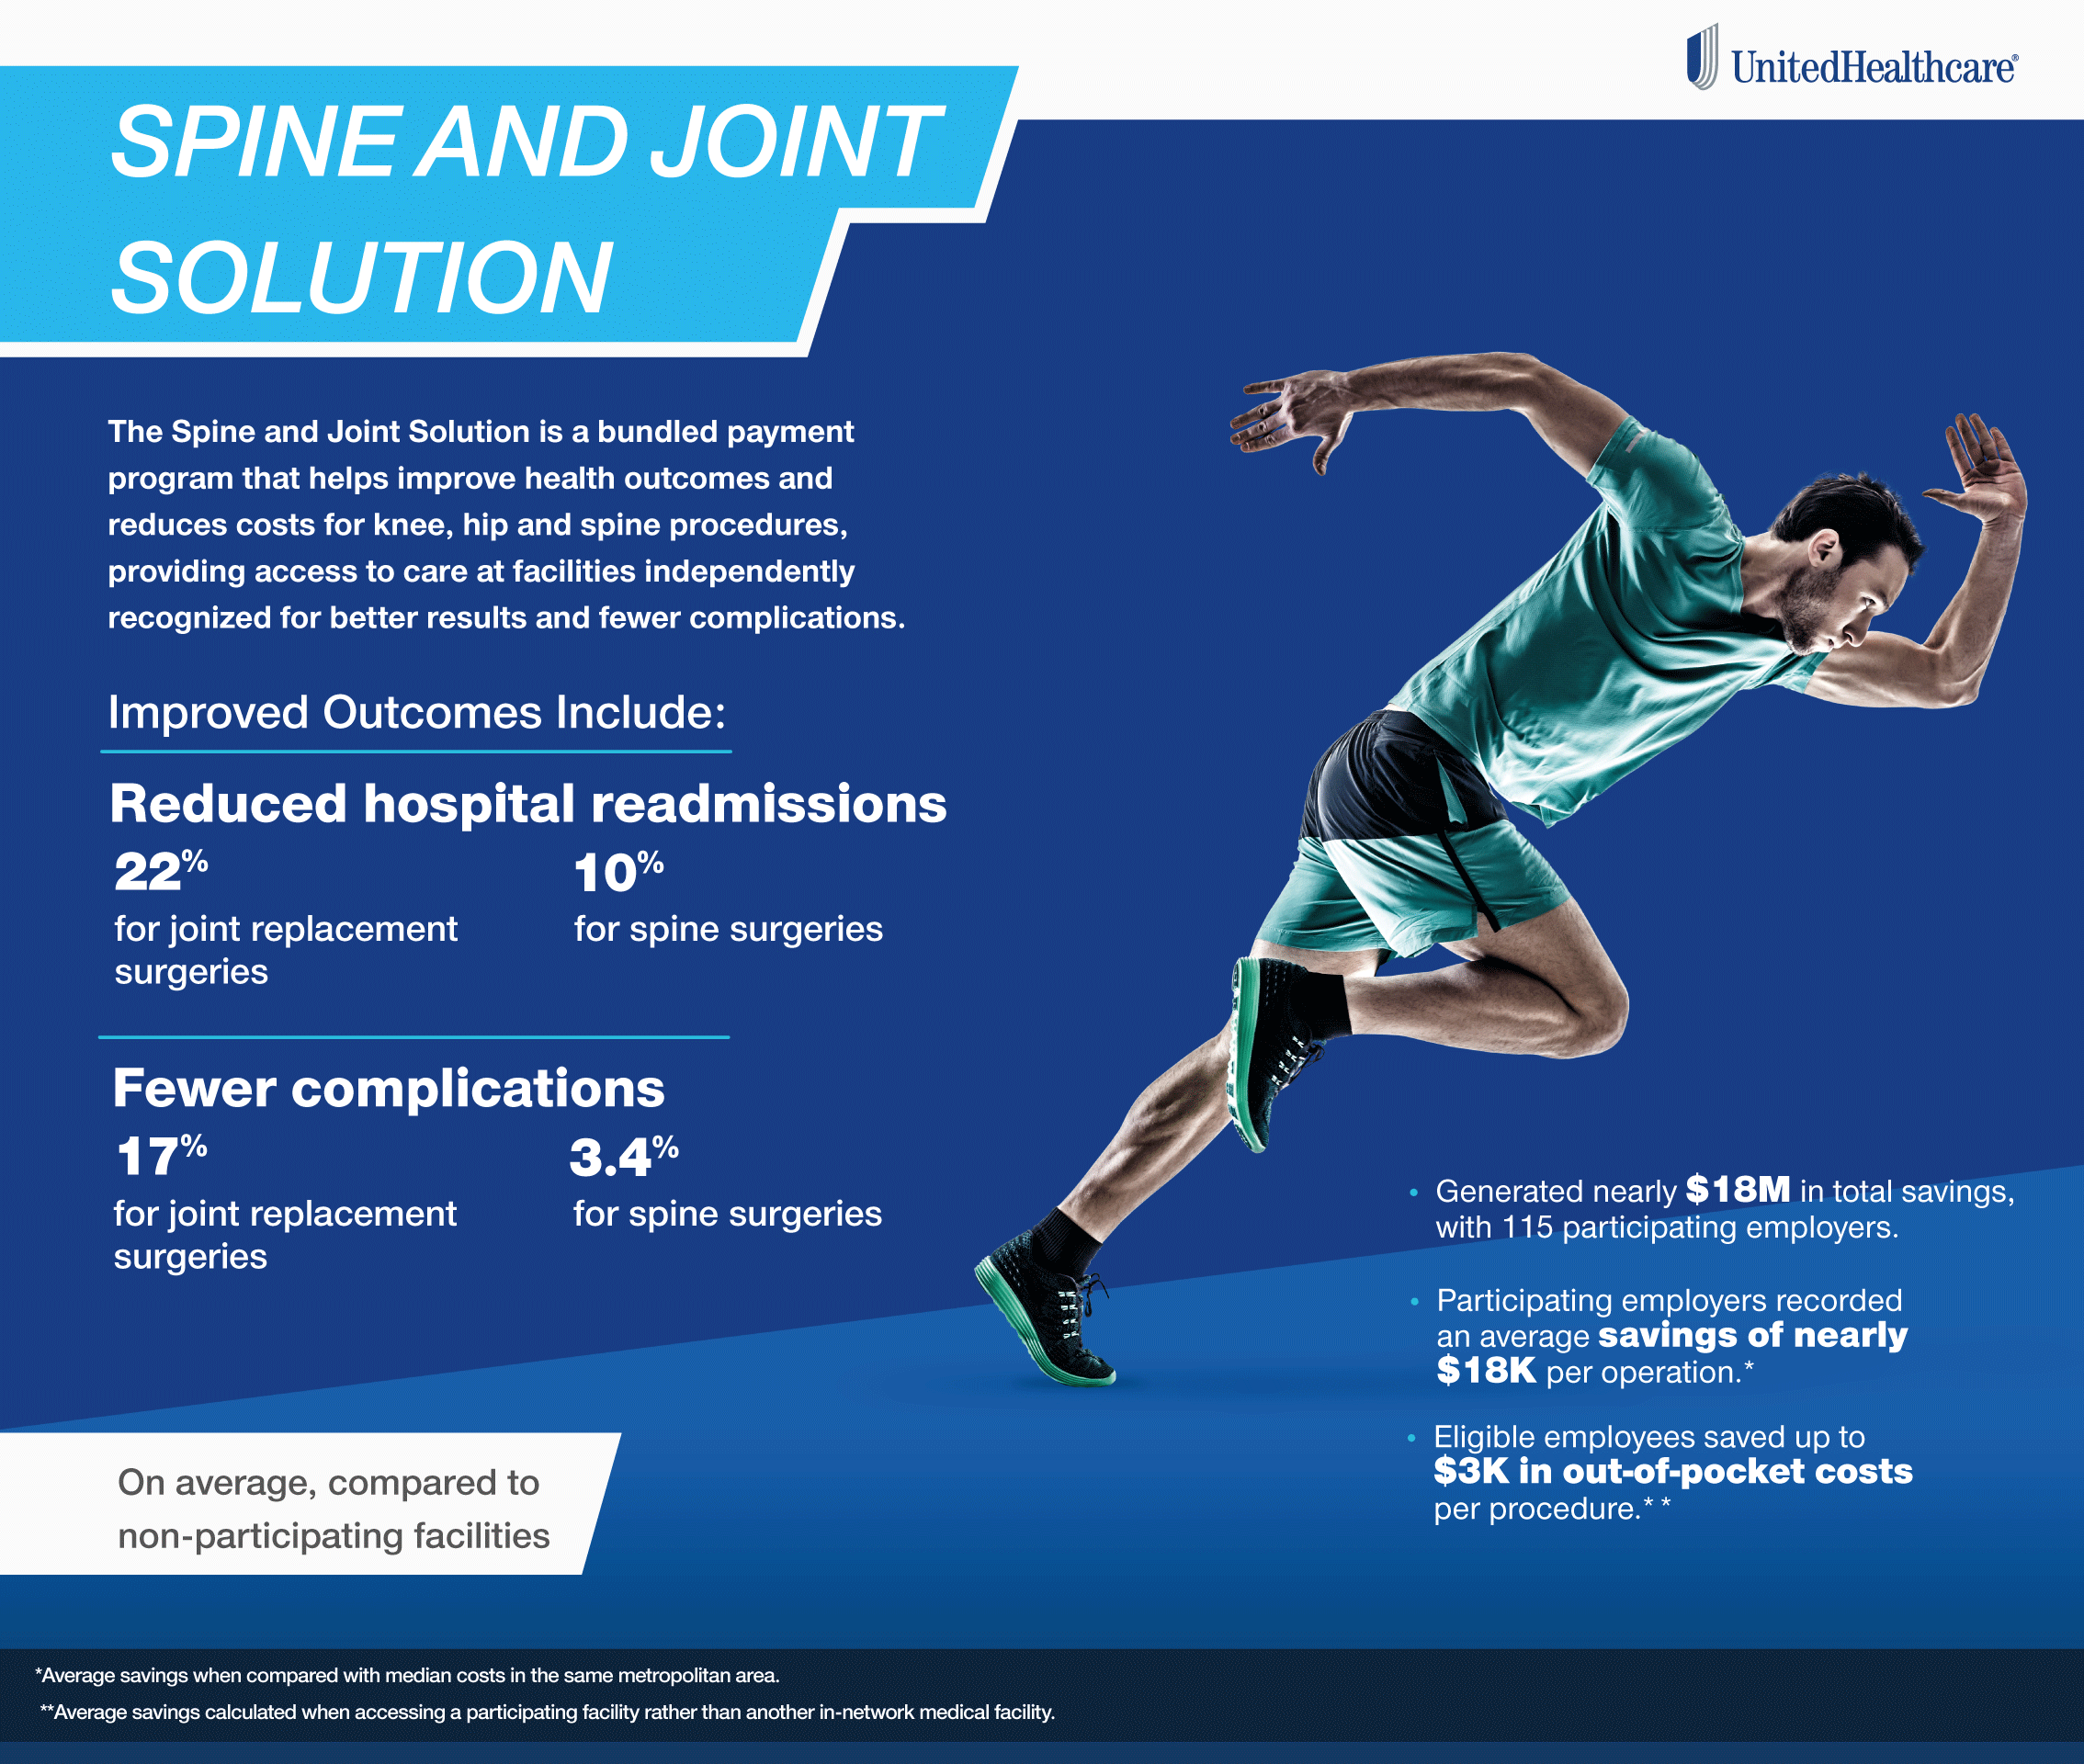 Infographic: Spine and joint bundled payment information